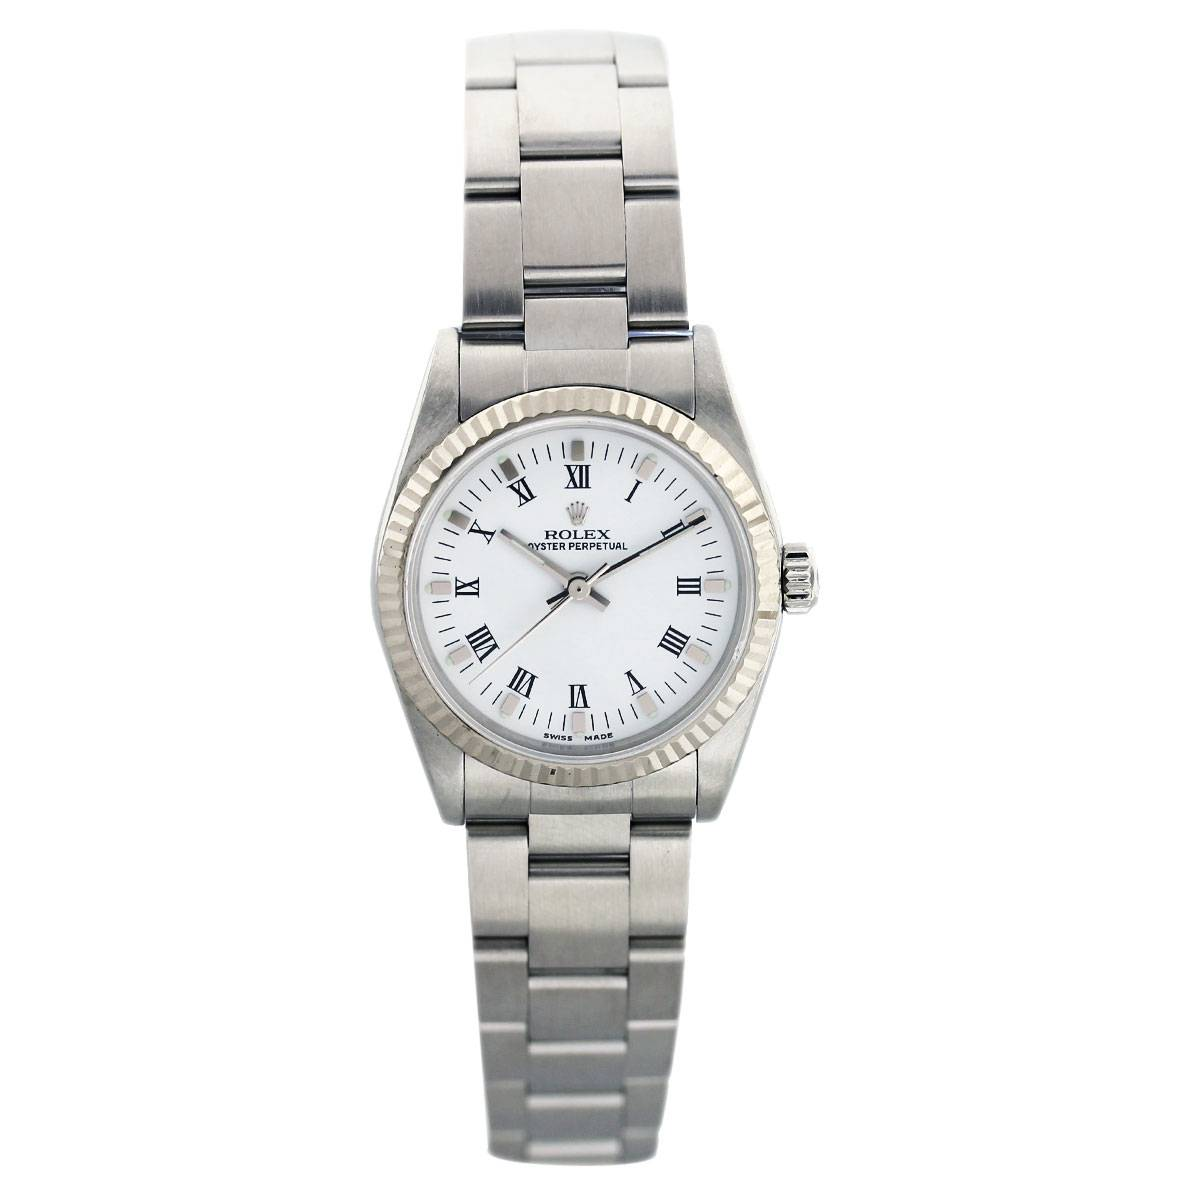 Rolex Midsize 77014 Stainless Steel White Roman Dial Watch